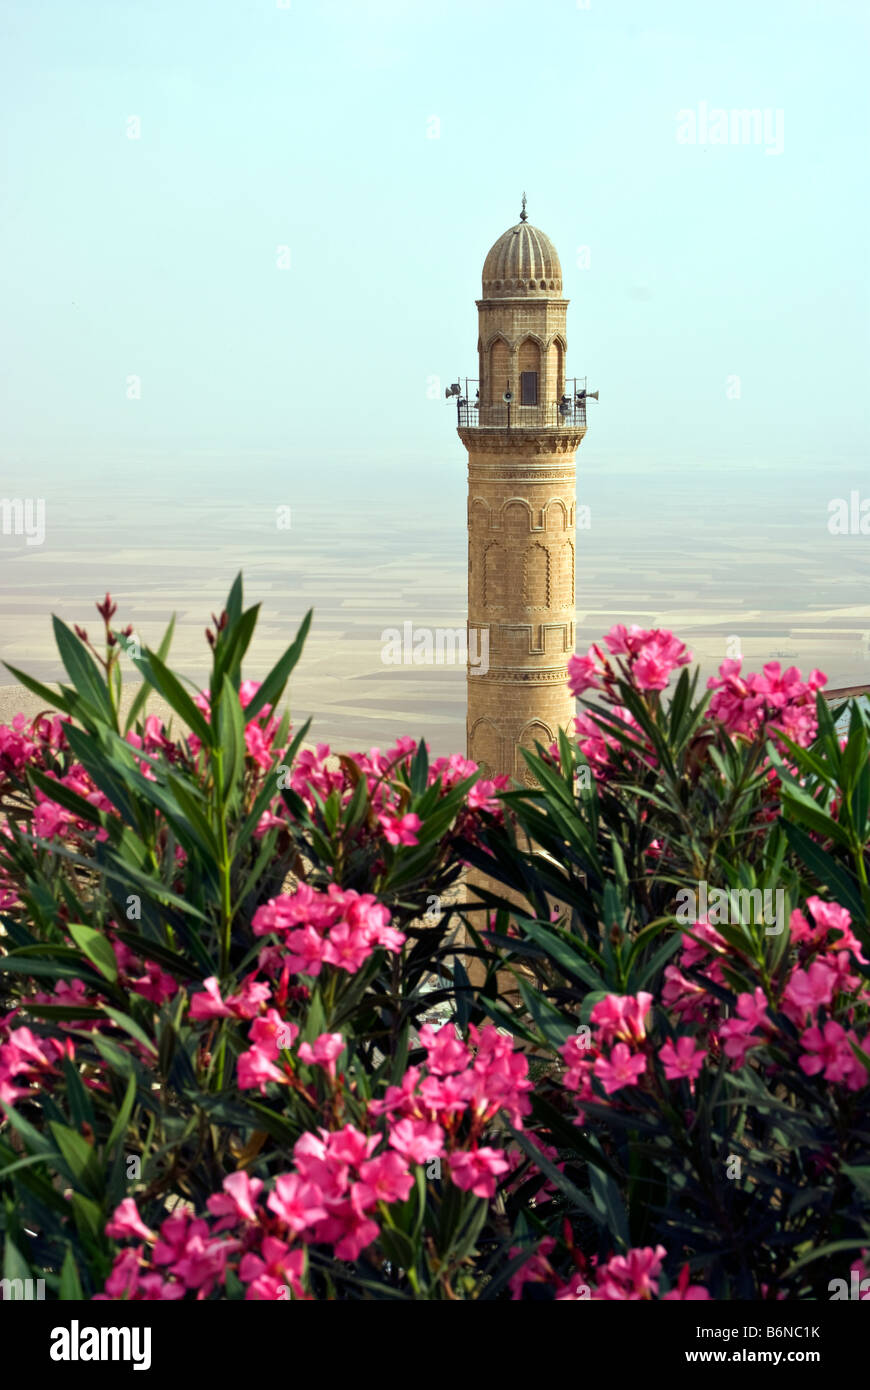 Mardin's Ulu Camii, Great Mosque, Minaret overlooking plain leading south to Syria - Stock Image